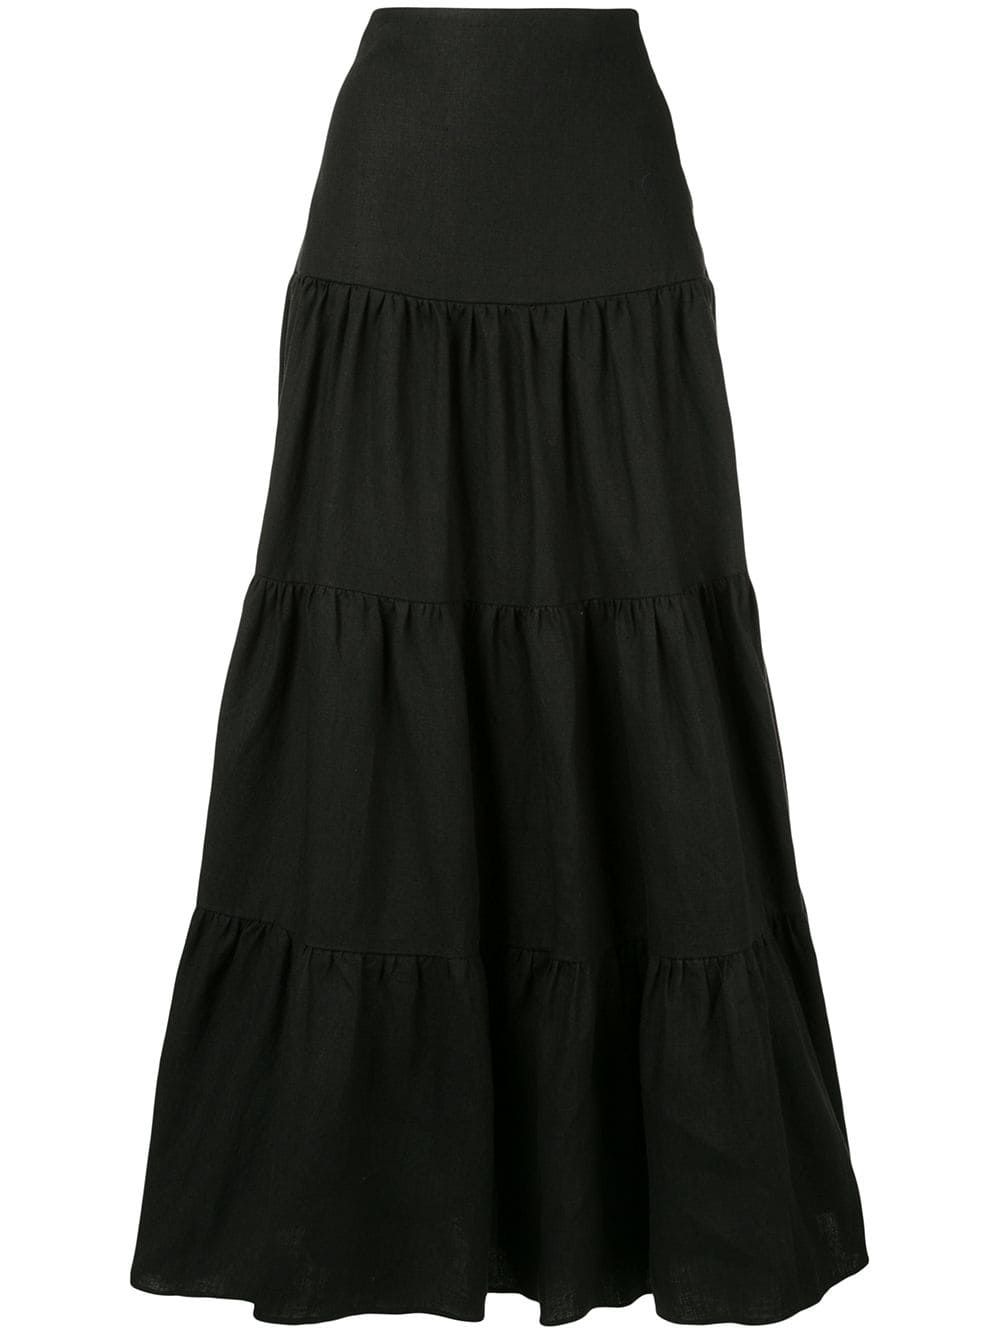 c10a2eb8db Matin Long Tiered Skirt in 2019 | Products | Skirts, Full skirts ...